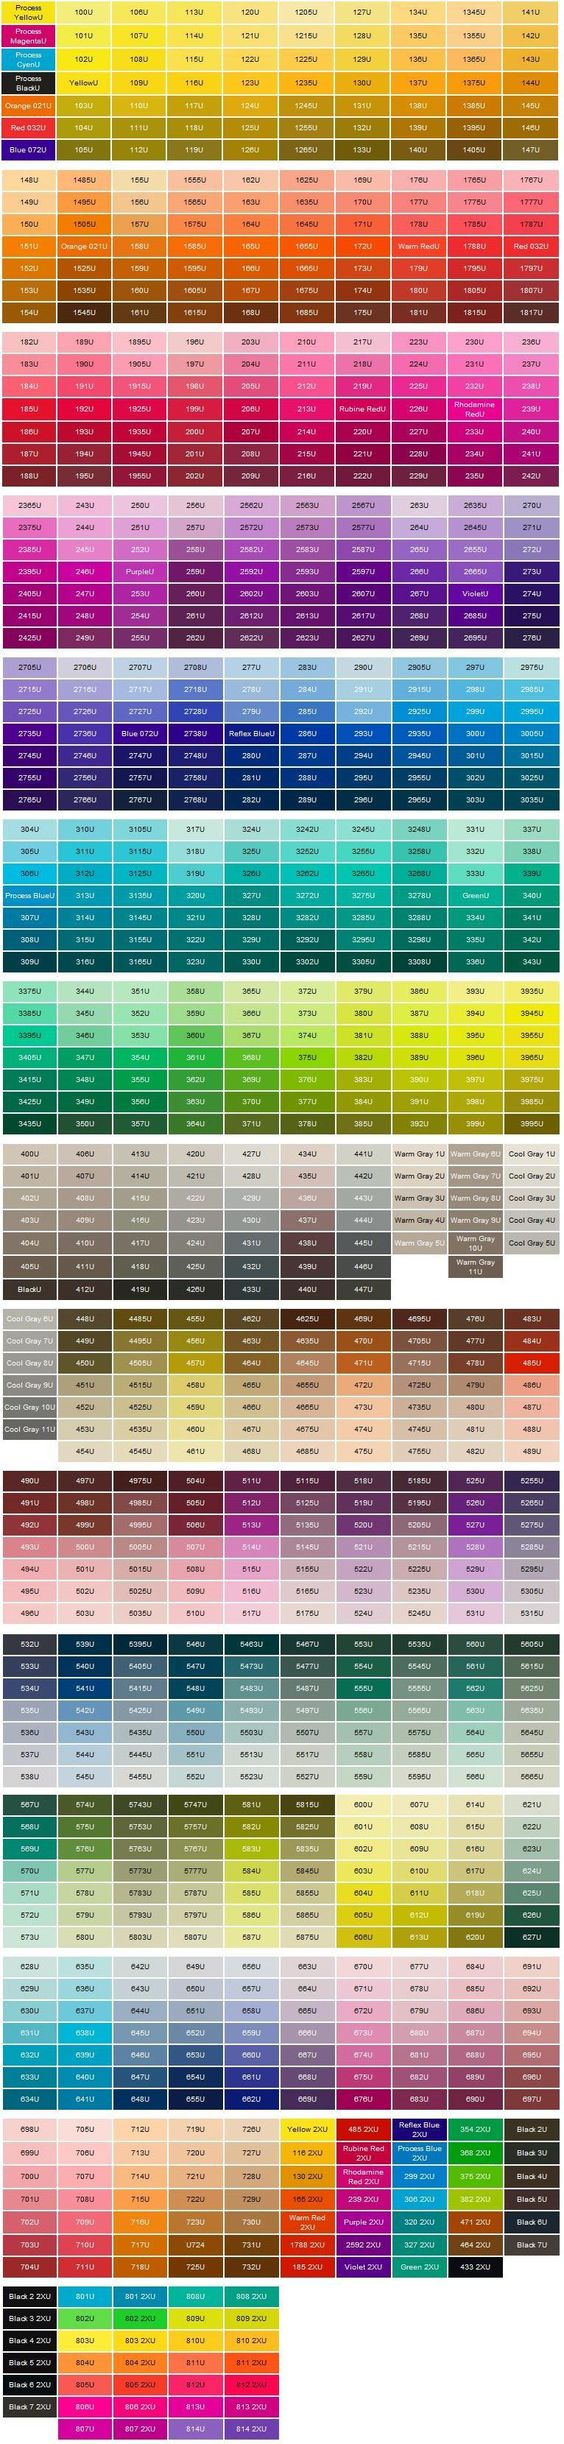 pantone color chart | pantone matching system color chart pms colors used for printing